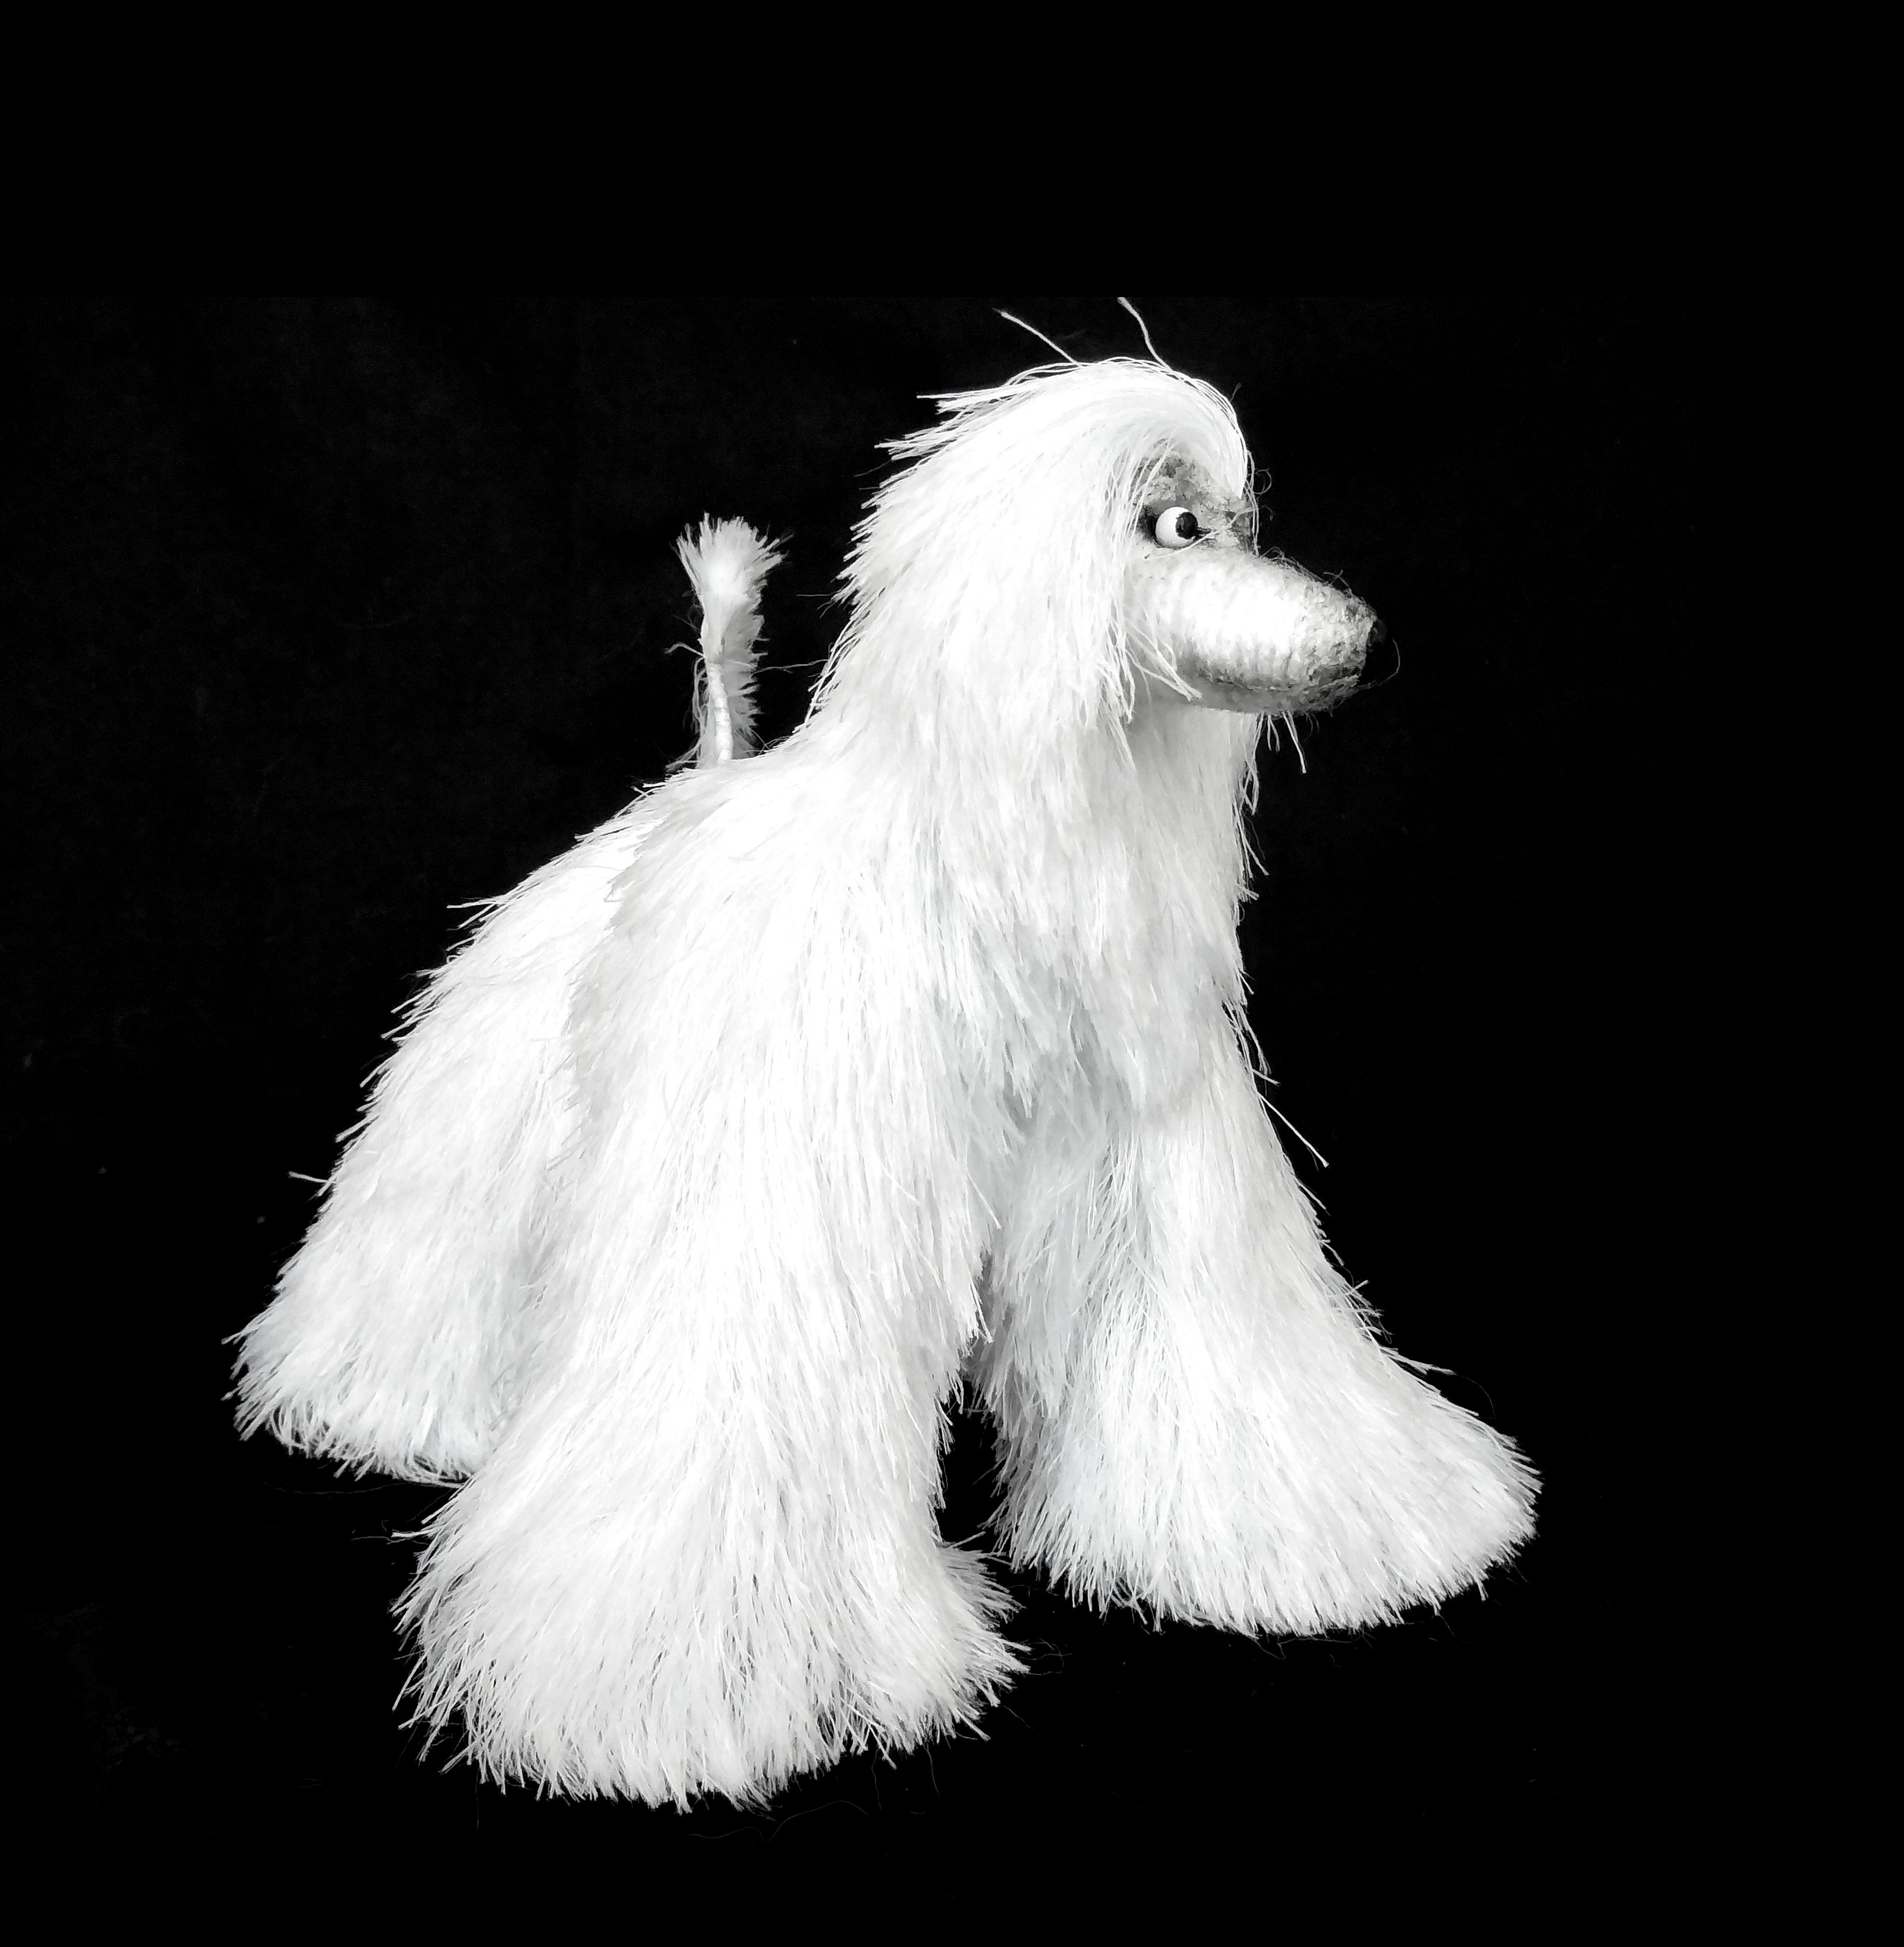 Miniature Toys, Snow White Afghan Hound, dog figurine, Stuffed Animal, Fun Plush Toy, Movable Figurine Dog, Cute Toy, Mini Toy, OOAK Artist,